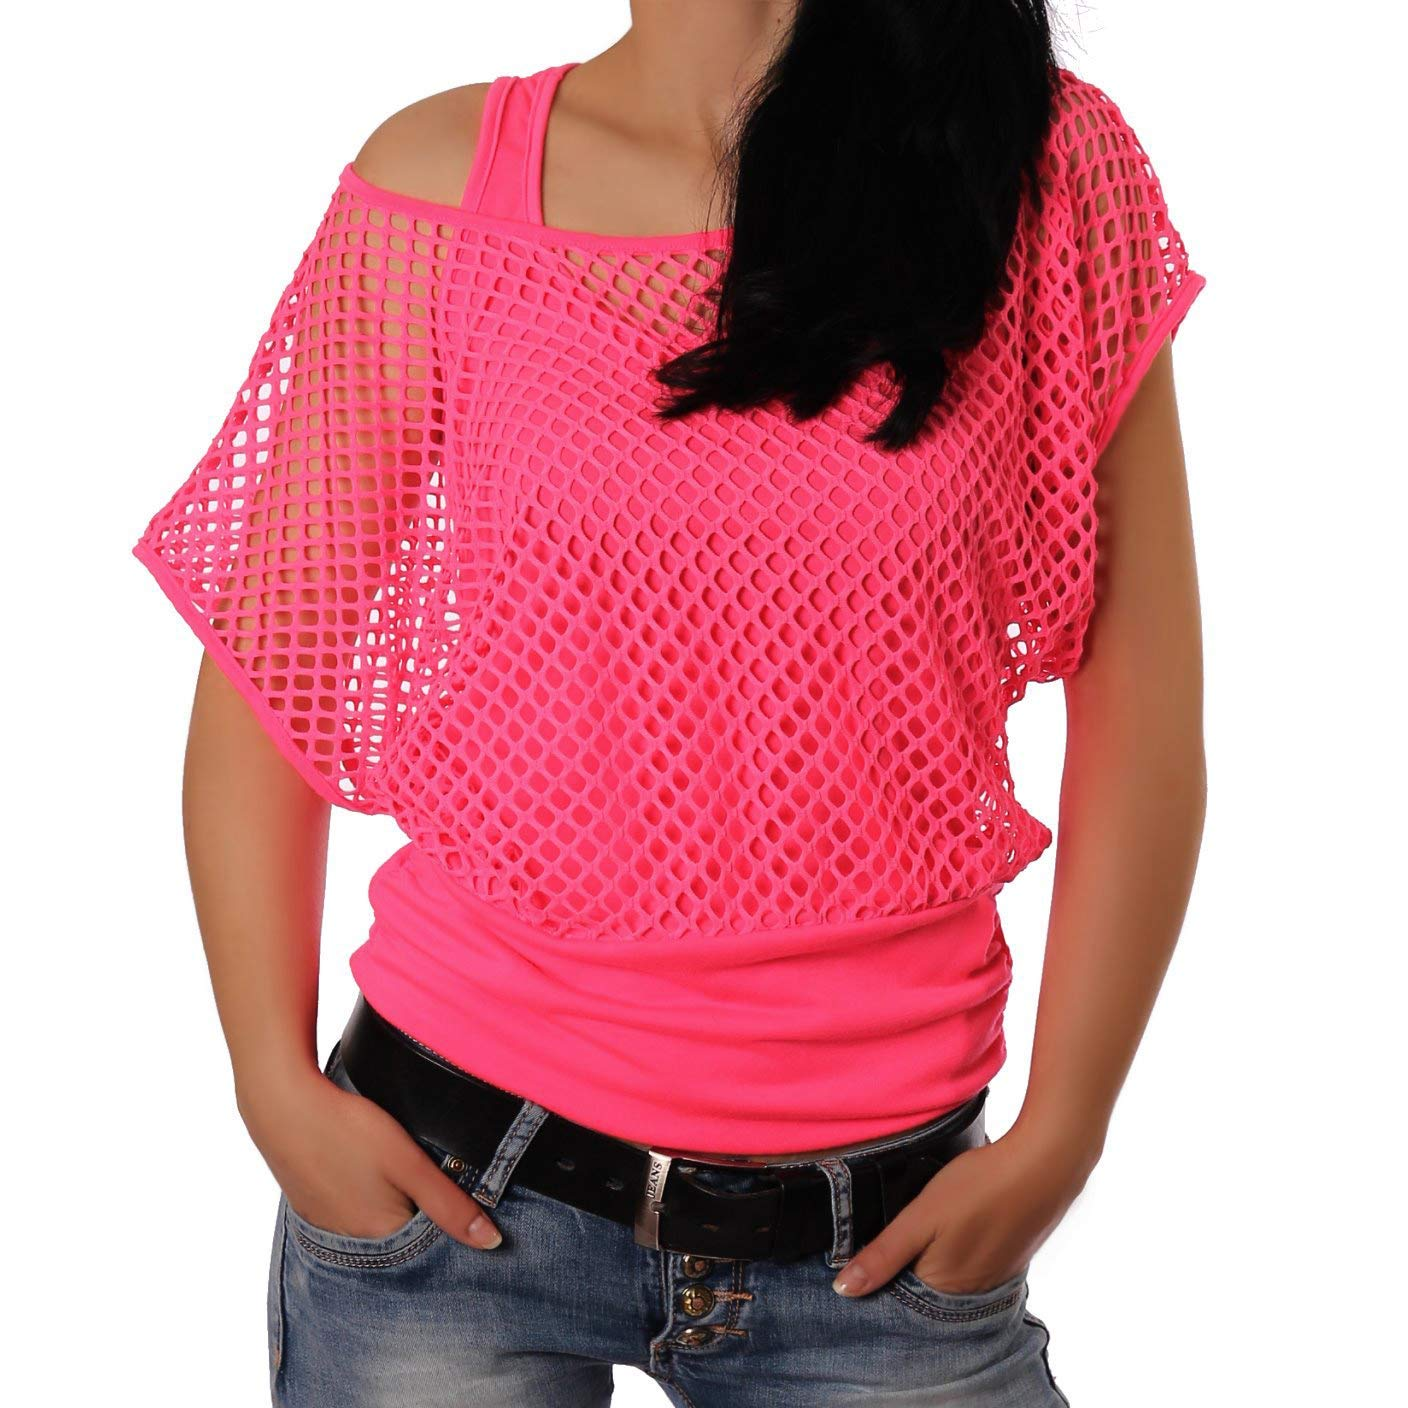 * NEW * Neon Pink Off Shoulder Fishnet Top for Women, XS to 2XL